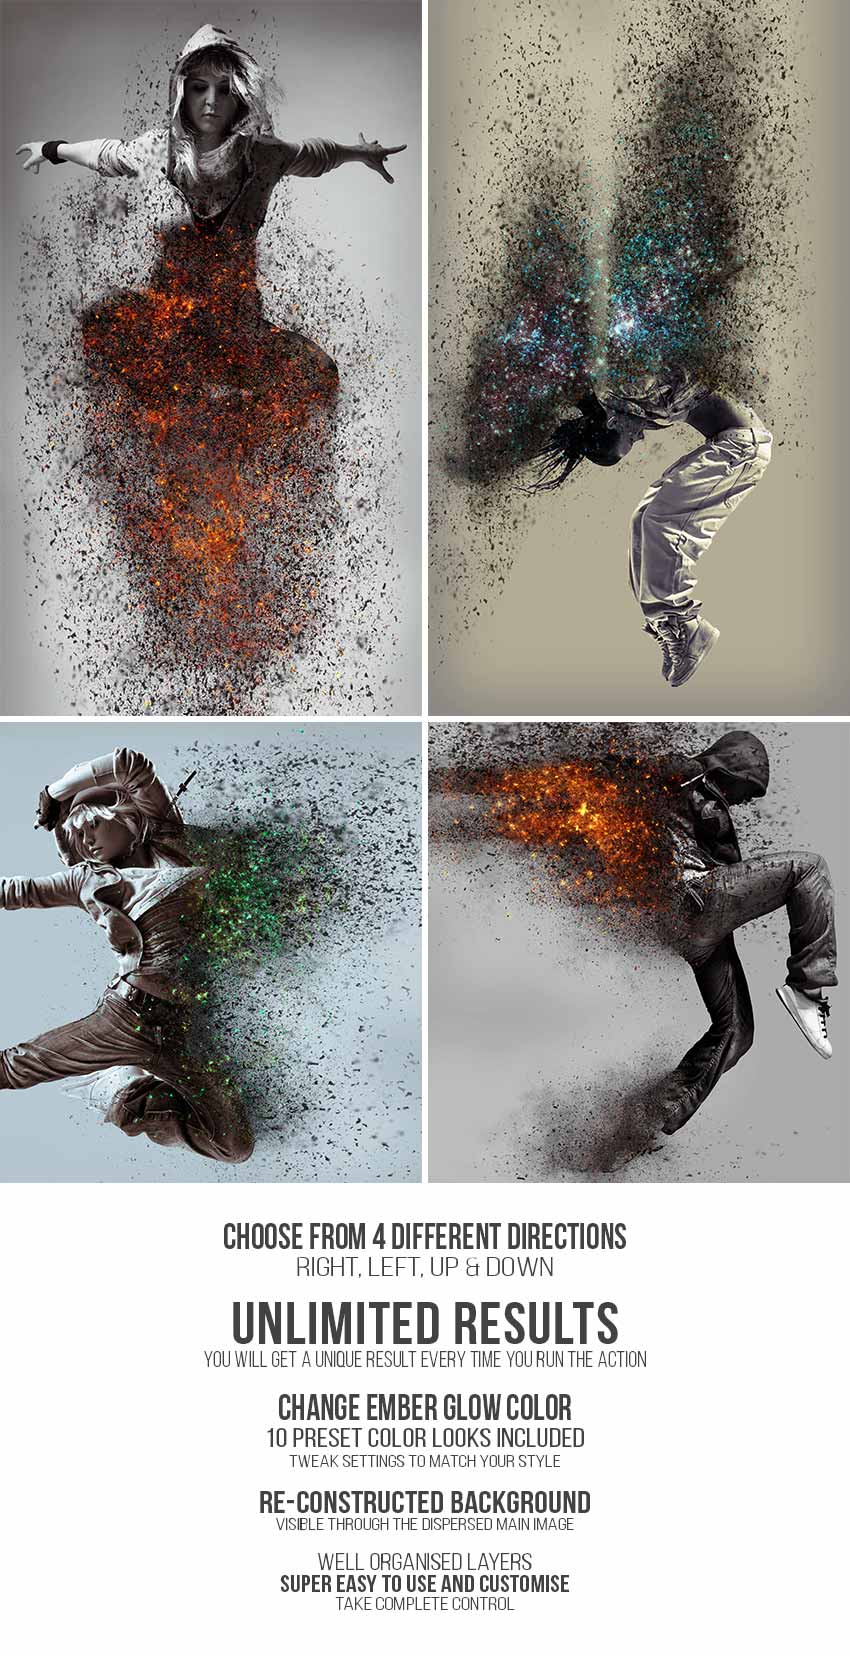 How to Create an Ashes & Embers Dispersion Action in Adobe Photoshop